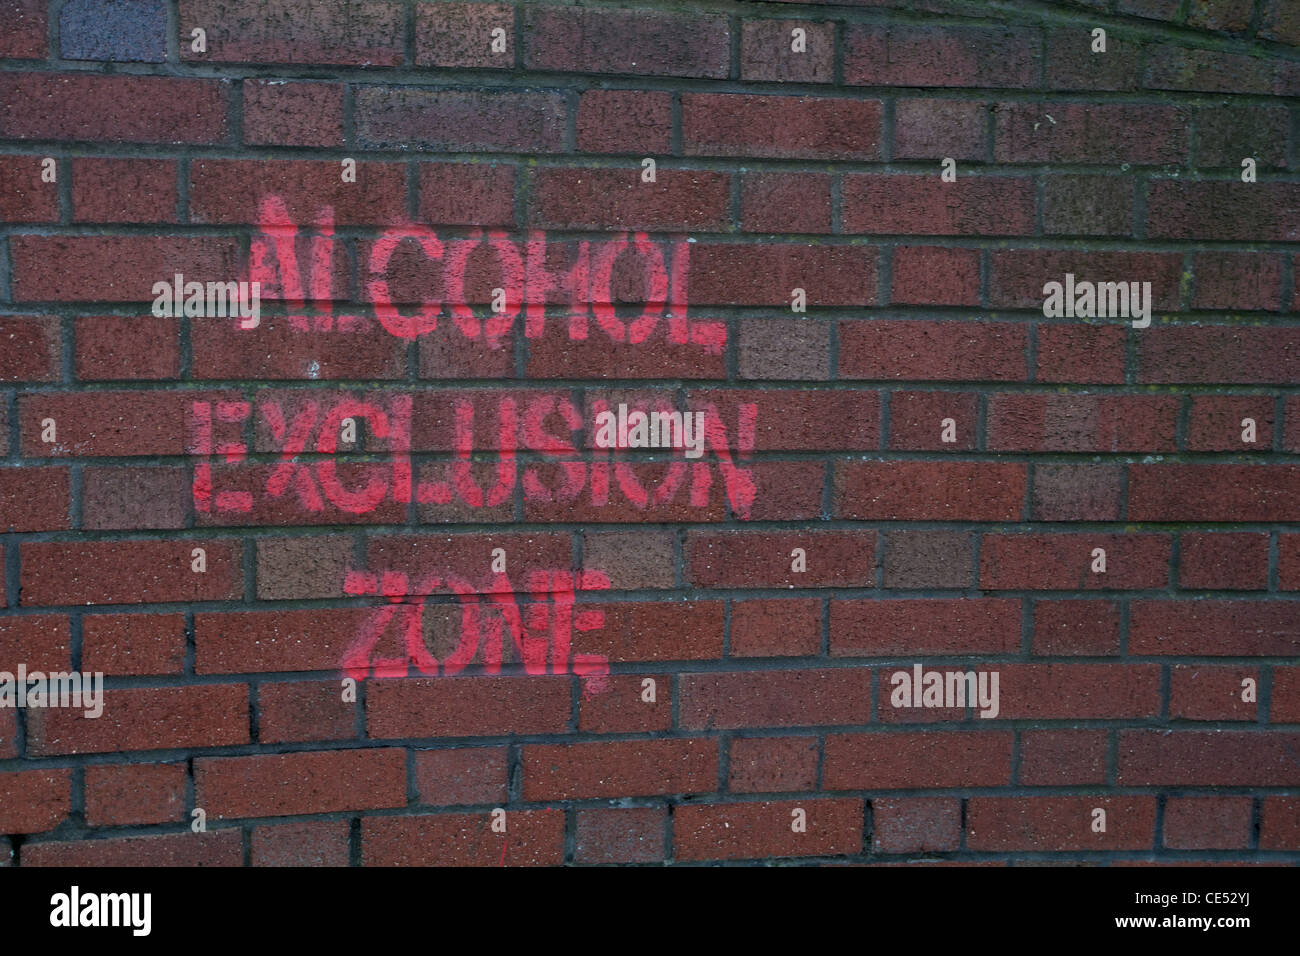 Alcohol Exclusion zone - Stock Image